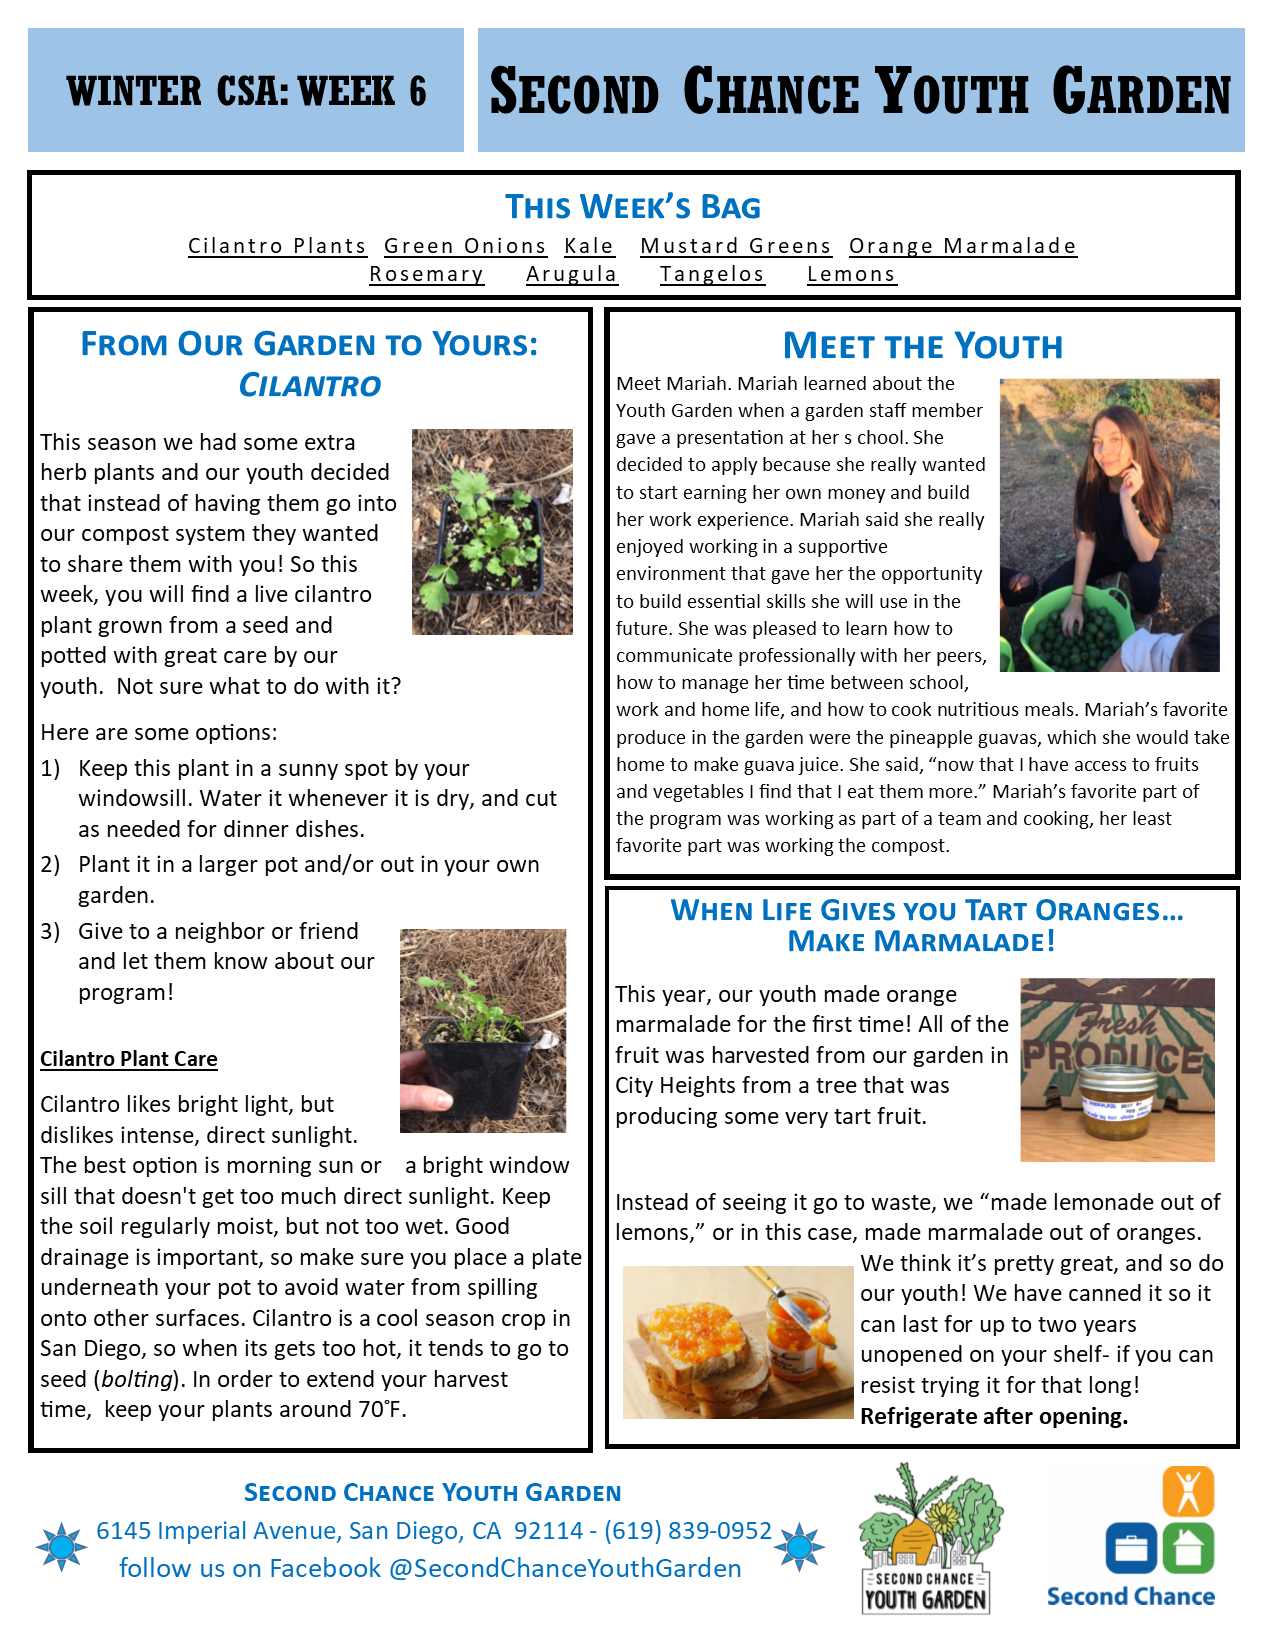 Youth Garden Newsletters Second Chance Employment Reentry